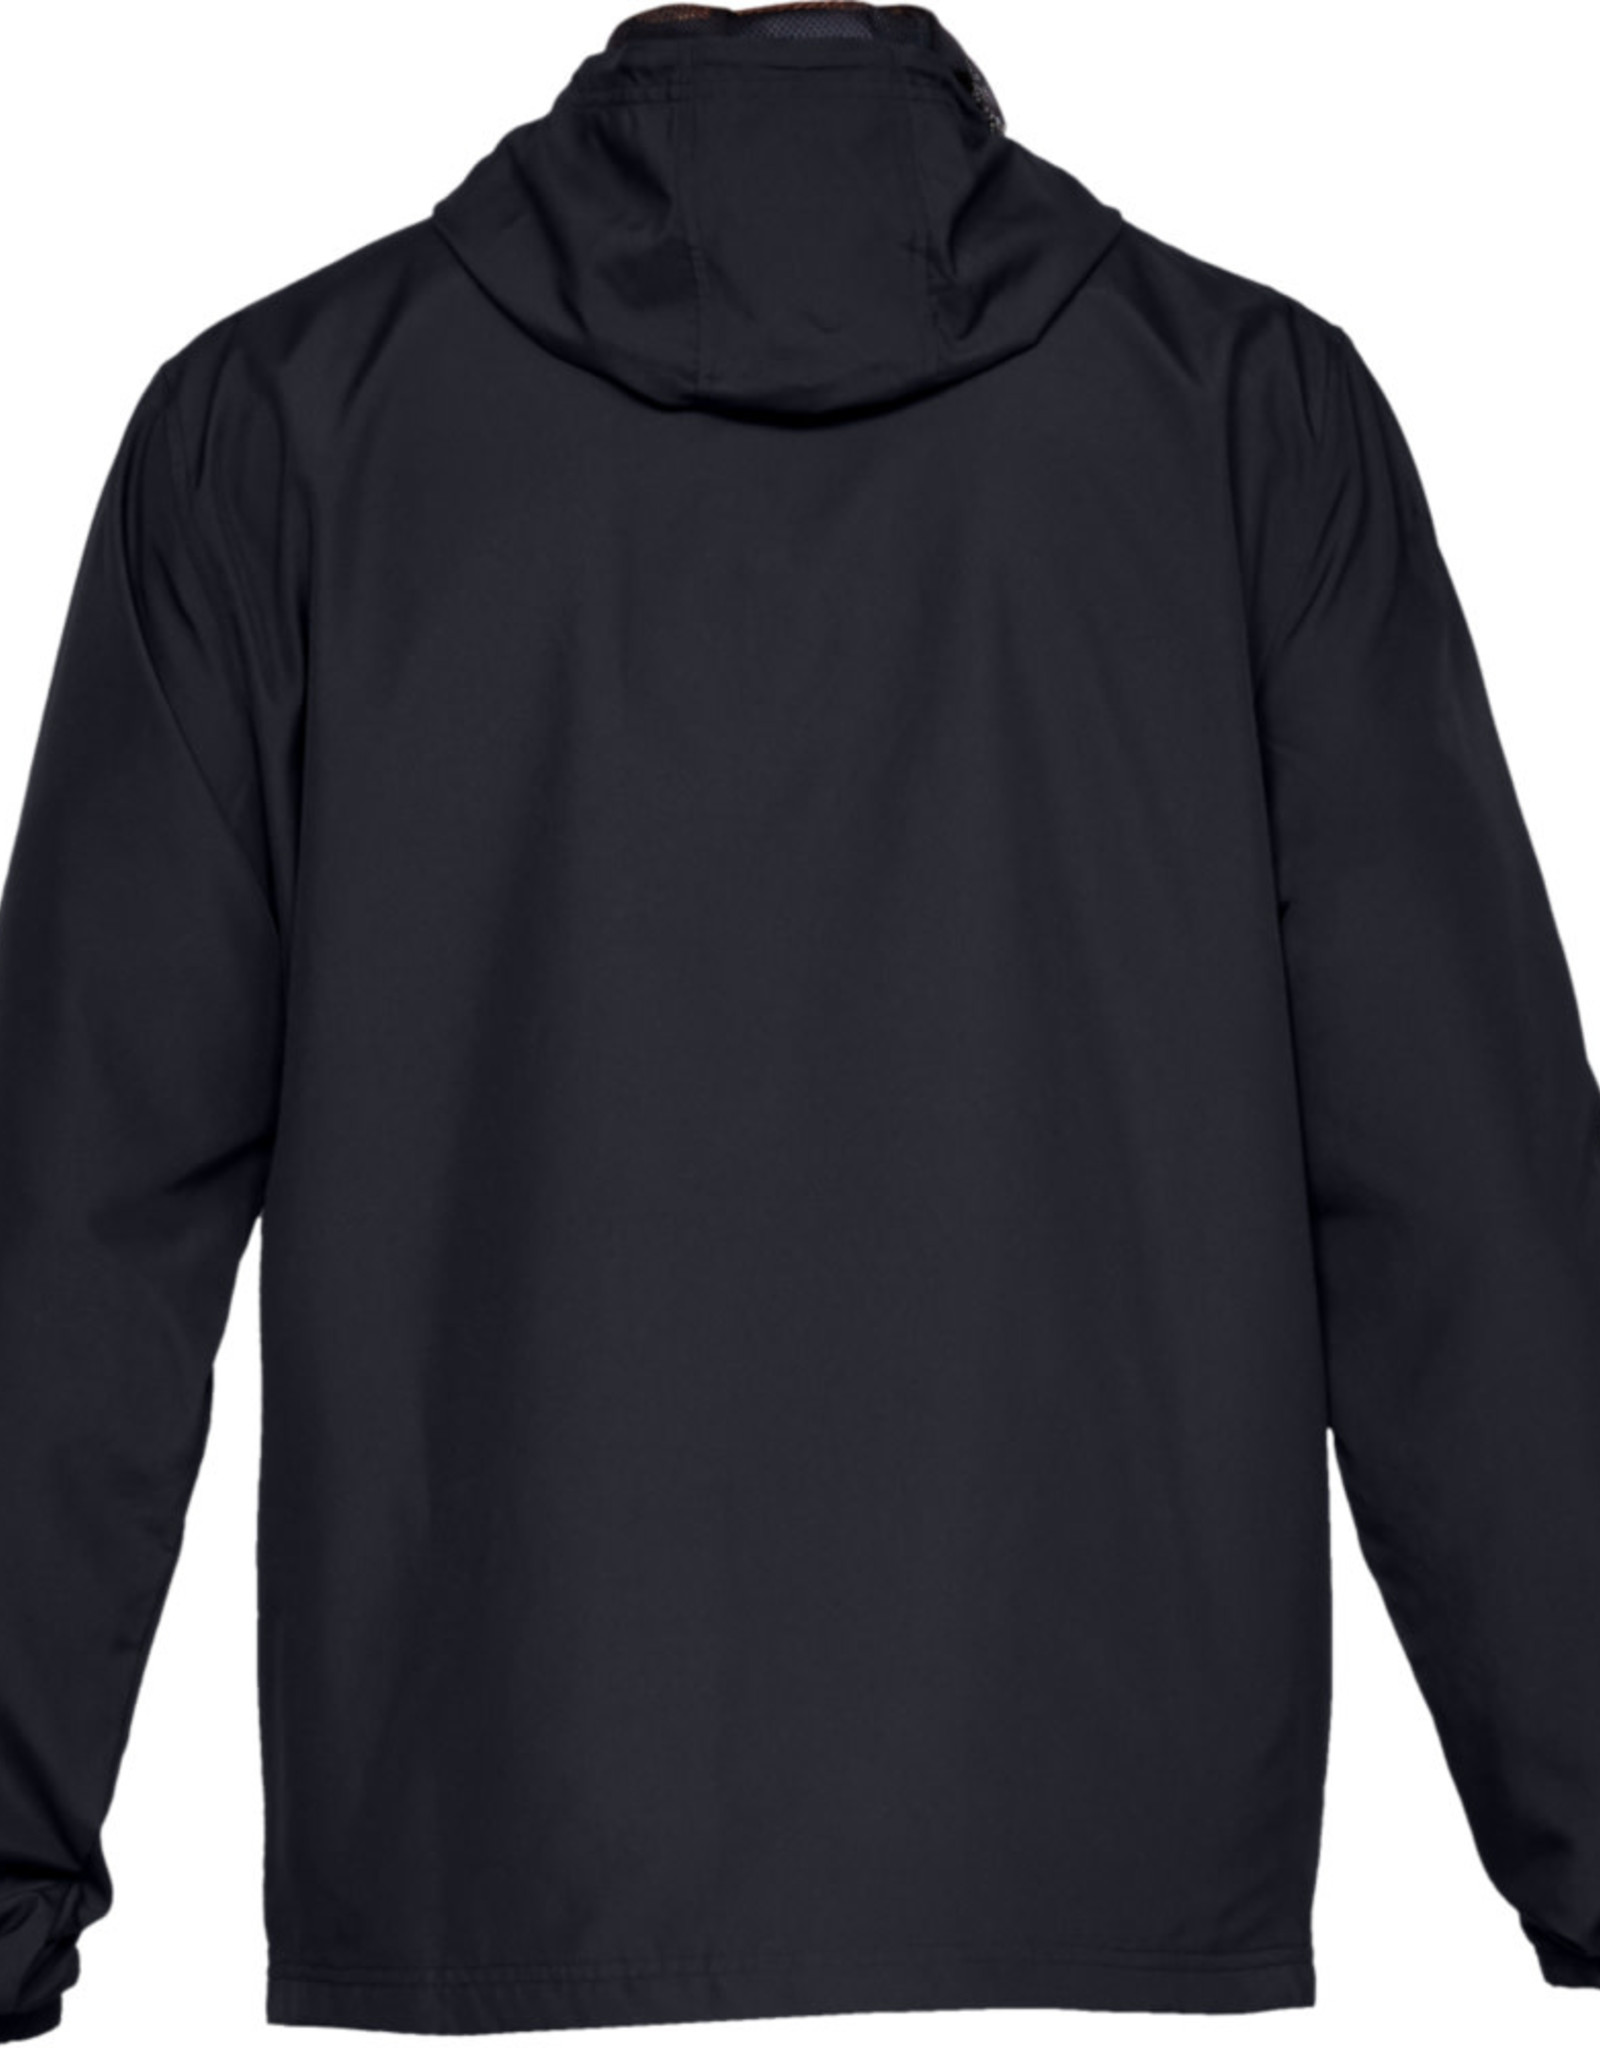 Under Armour Sportstyle Wind Jacket - Black